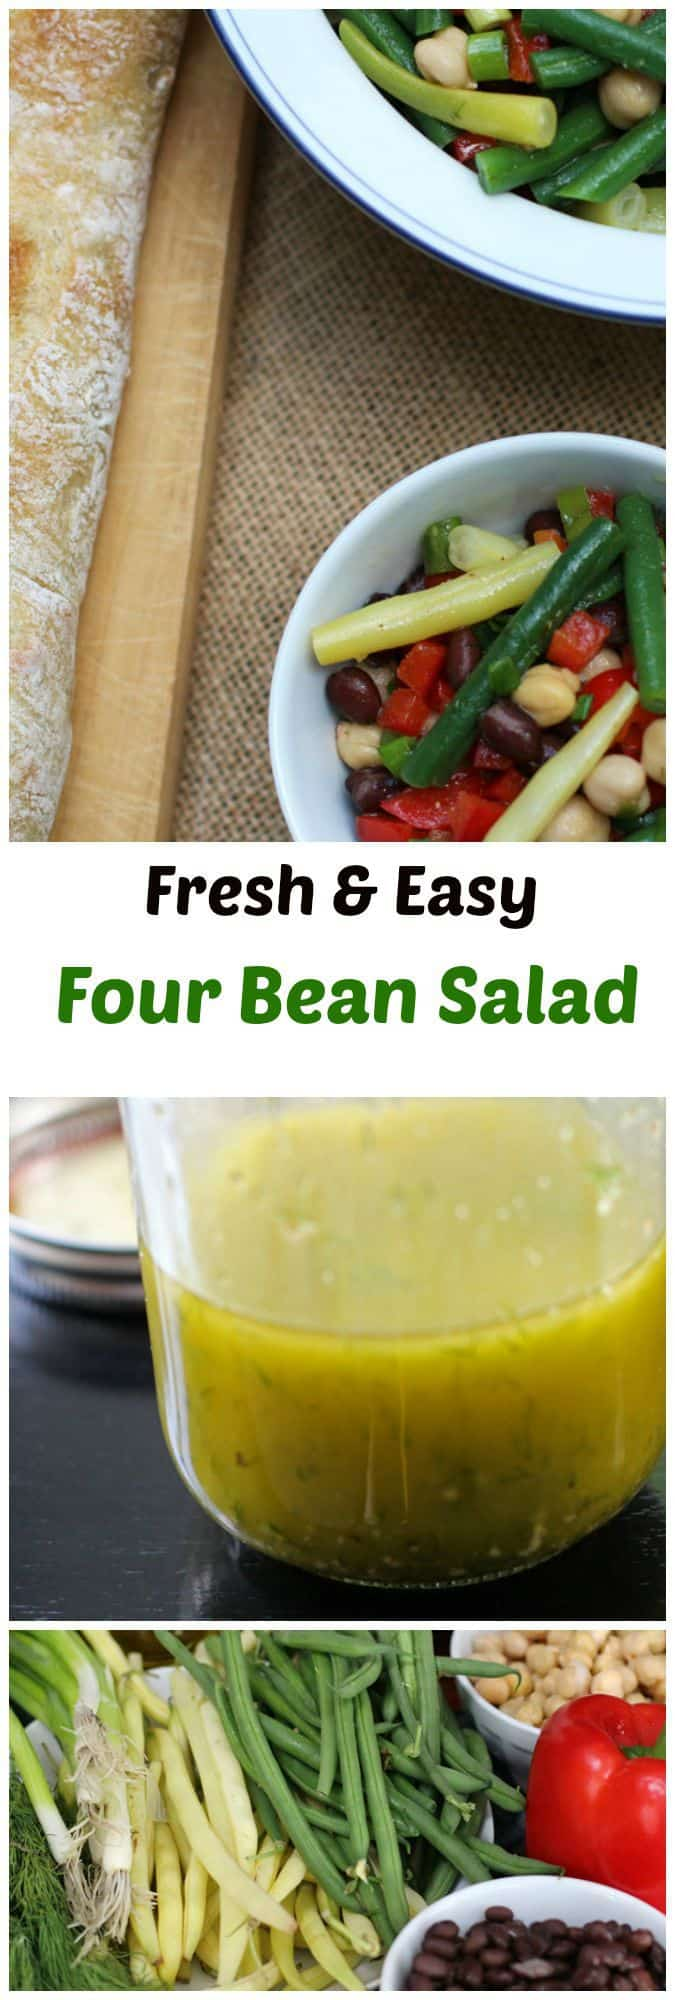 Fresh & Easy Four Bean Salad - A simple and delightful side dish for any lunch or dinner | Mother Would Know